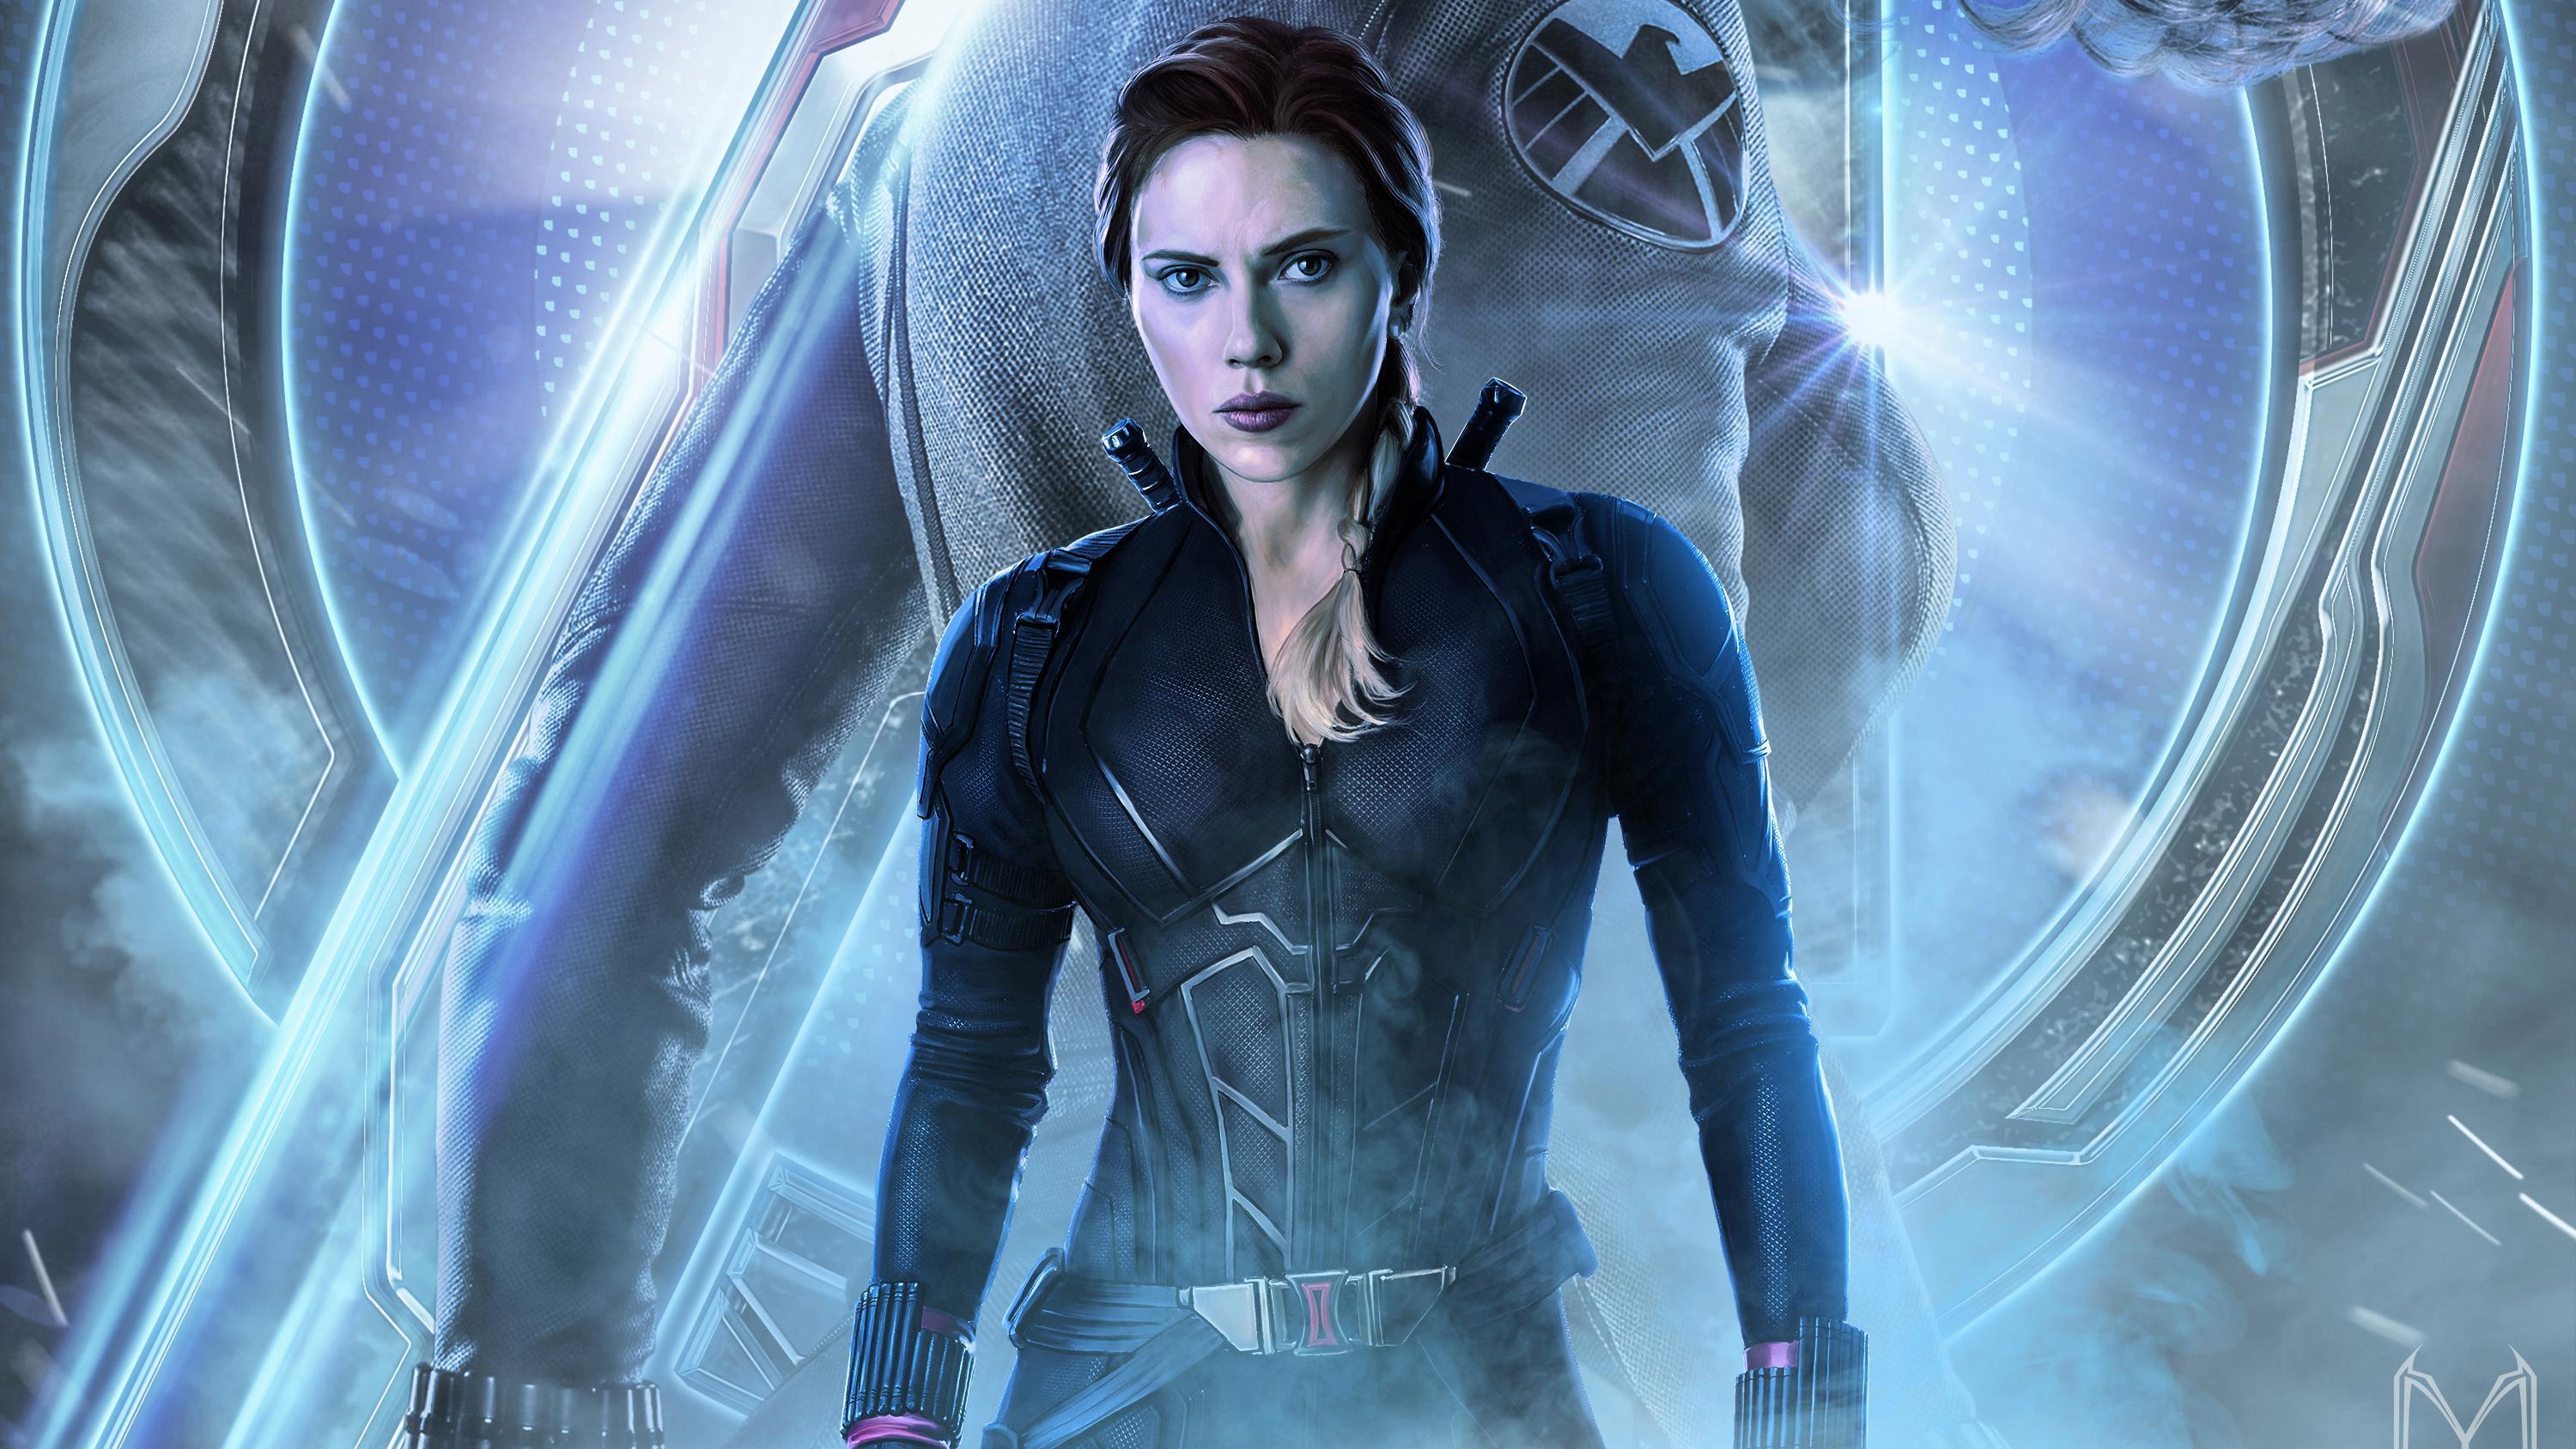 Black Widow Endgame Wallpapers Wallpaper Cave